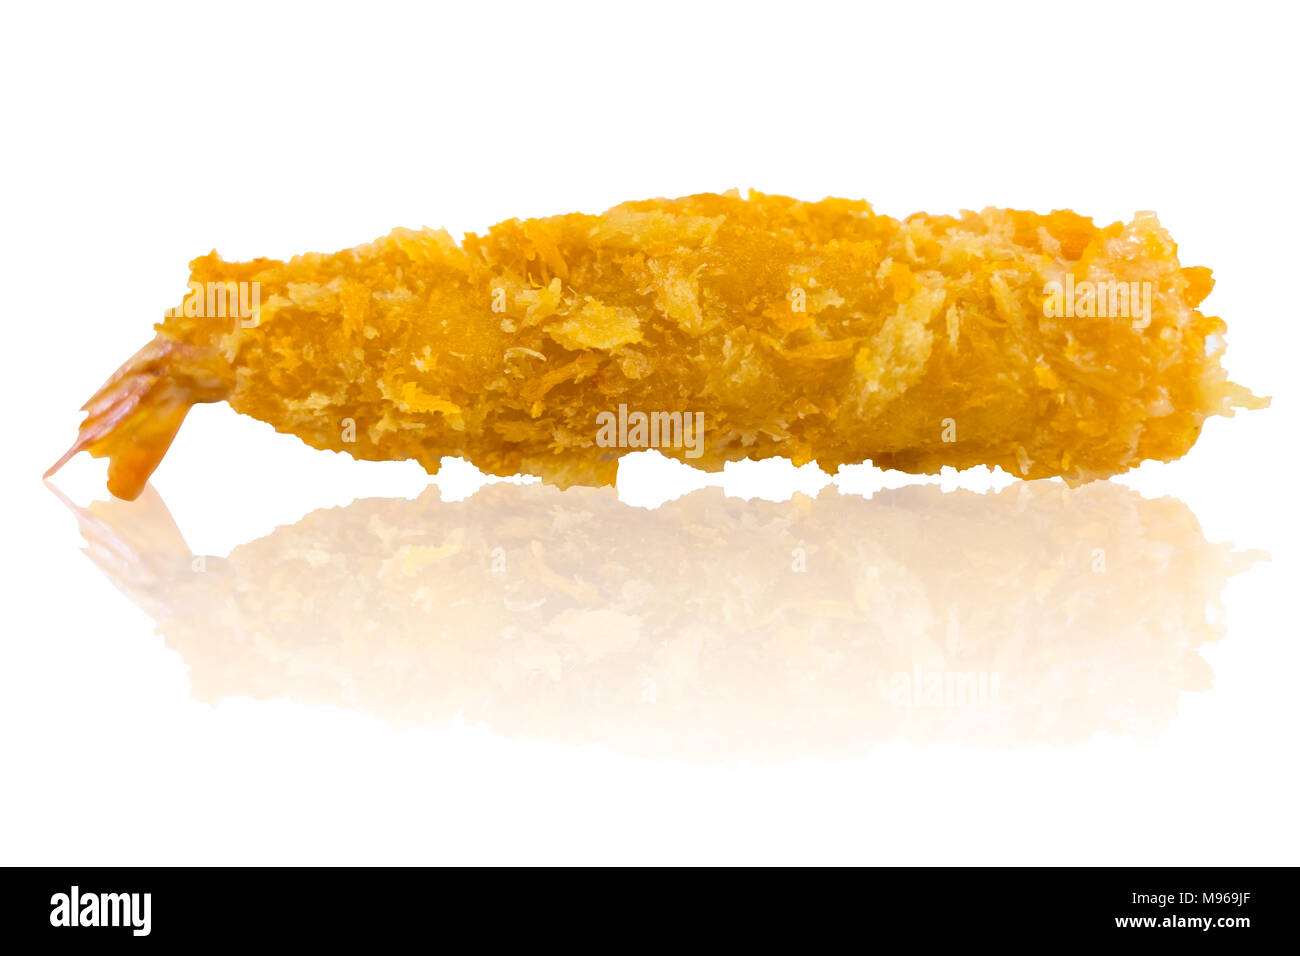 Ebi Fry or Deep Fried Breaded Prawn Shrimp isolated on white - Stock Image